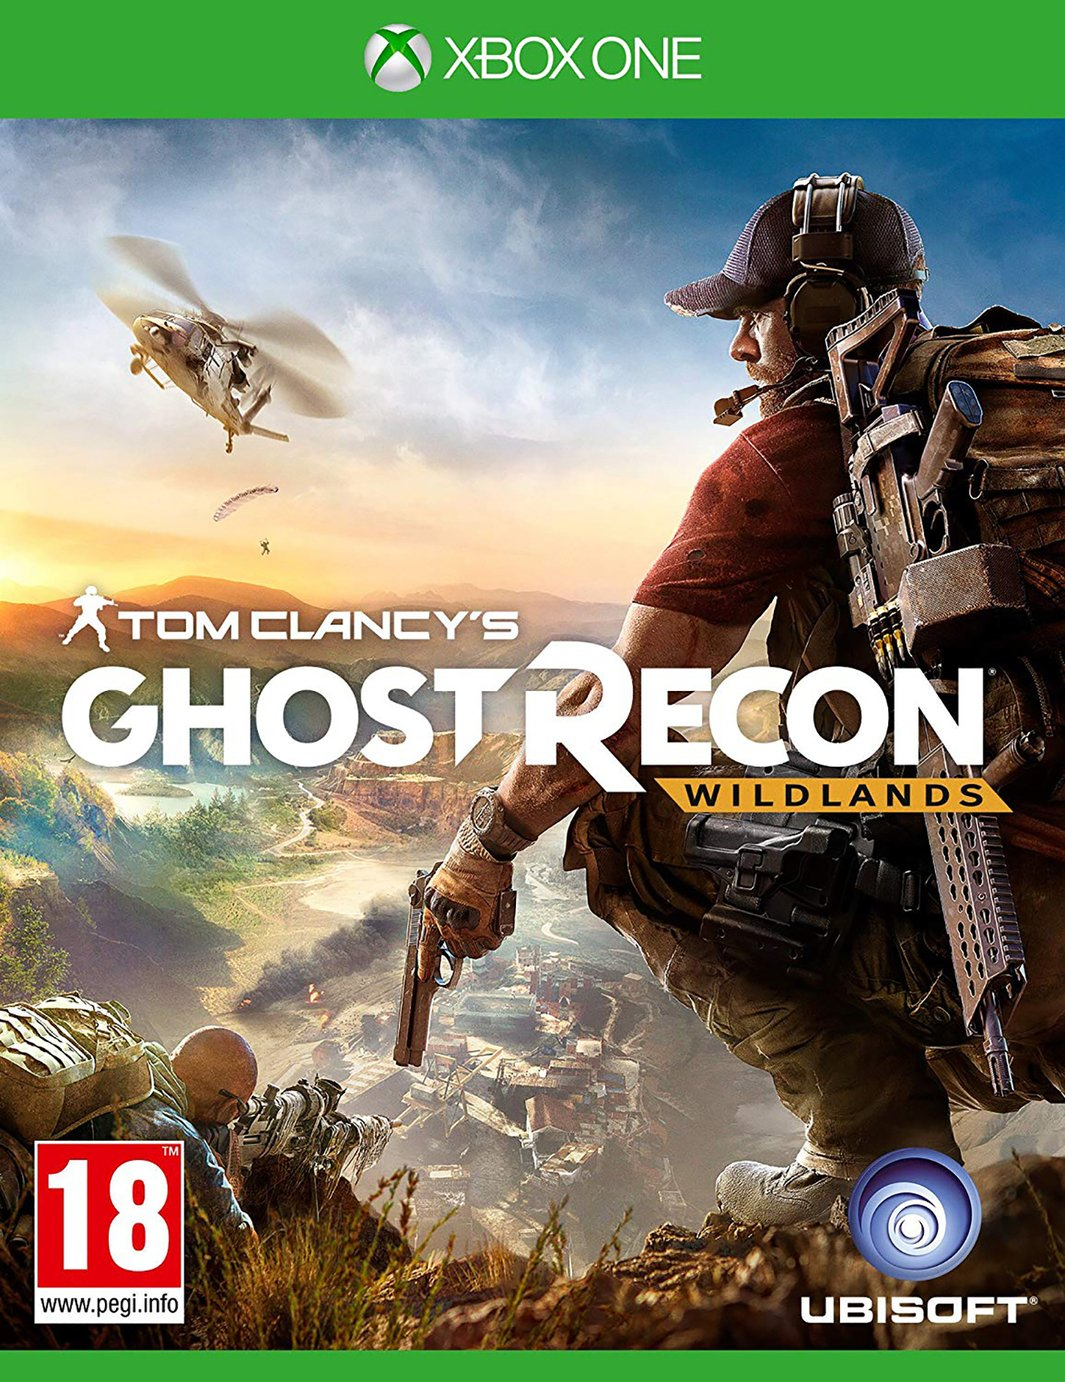 Tom Clancy's Ghost Recon: Wildlands Xbox One Game from Xbox One X Enhanced